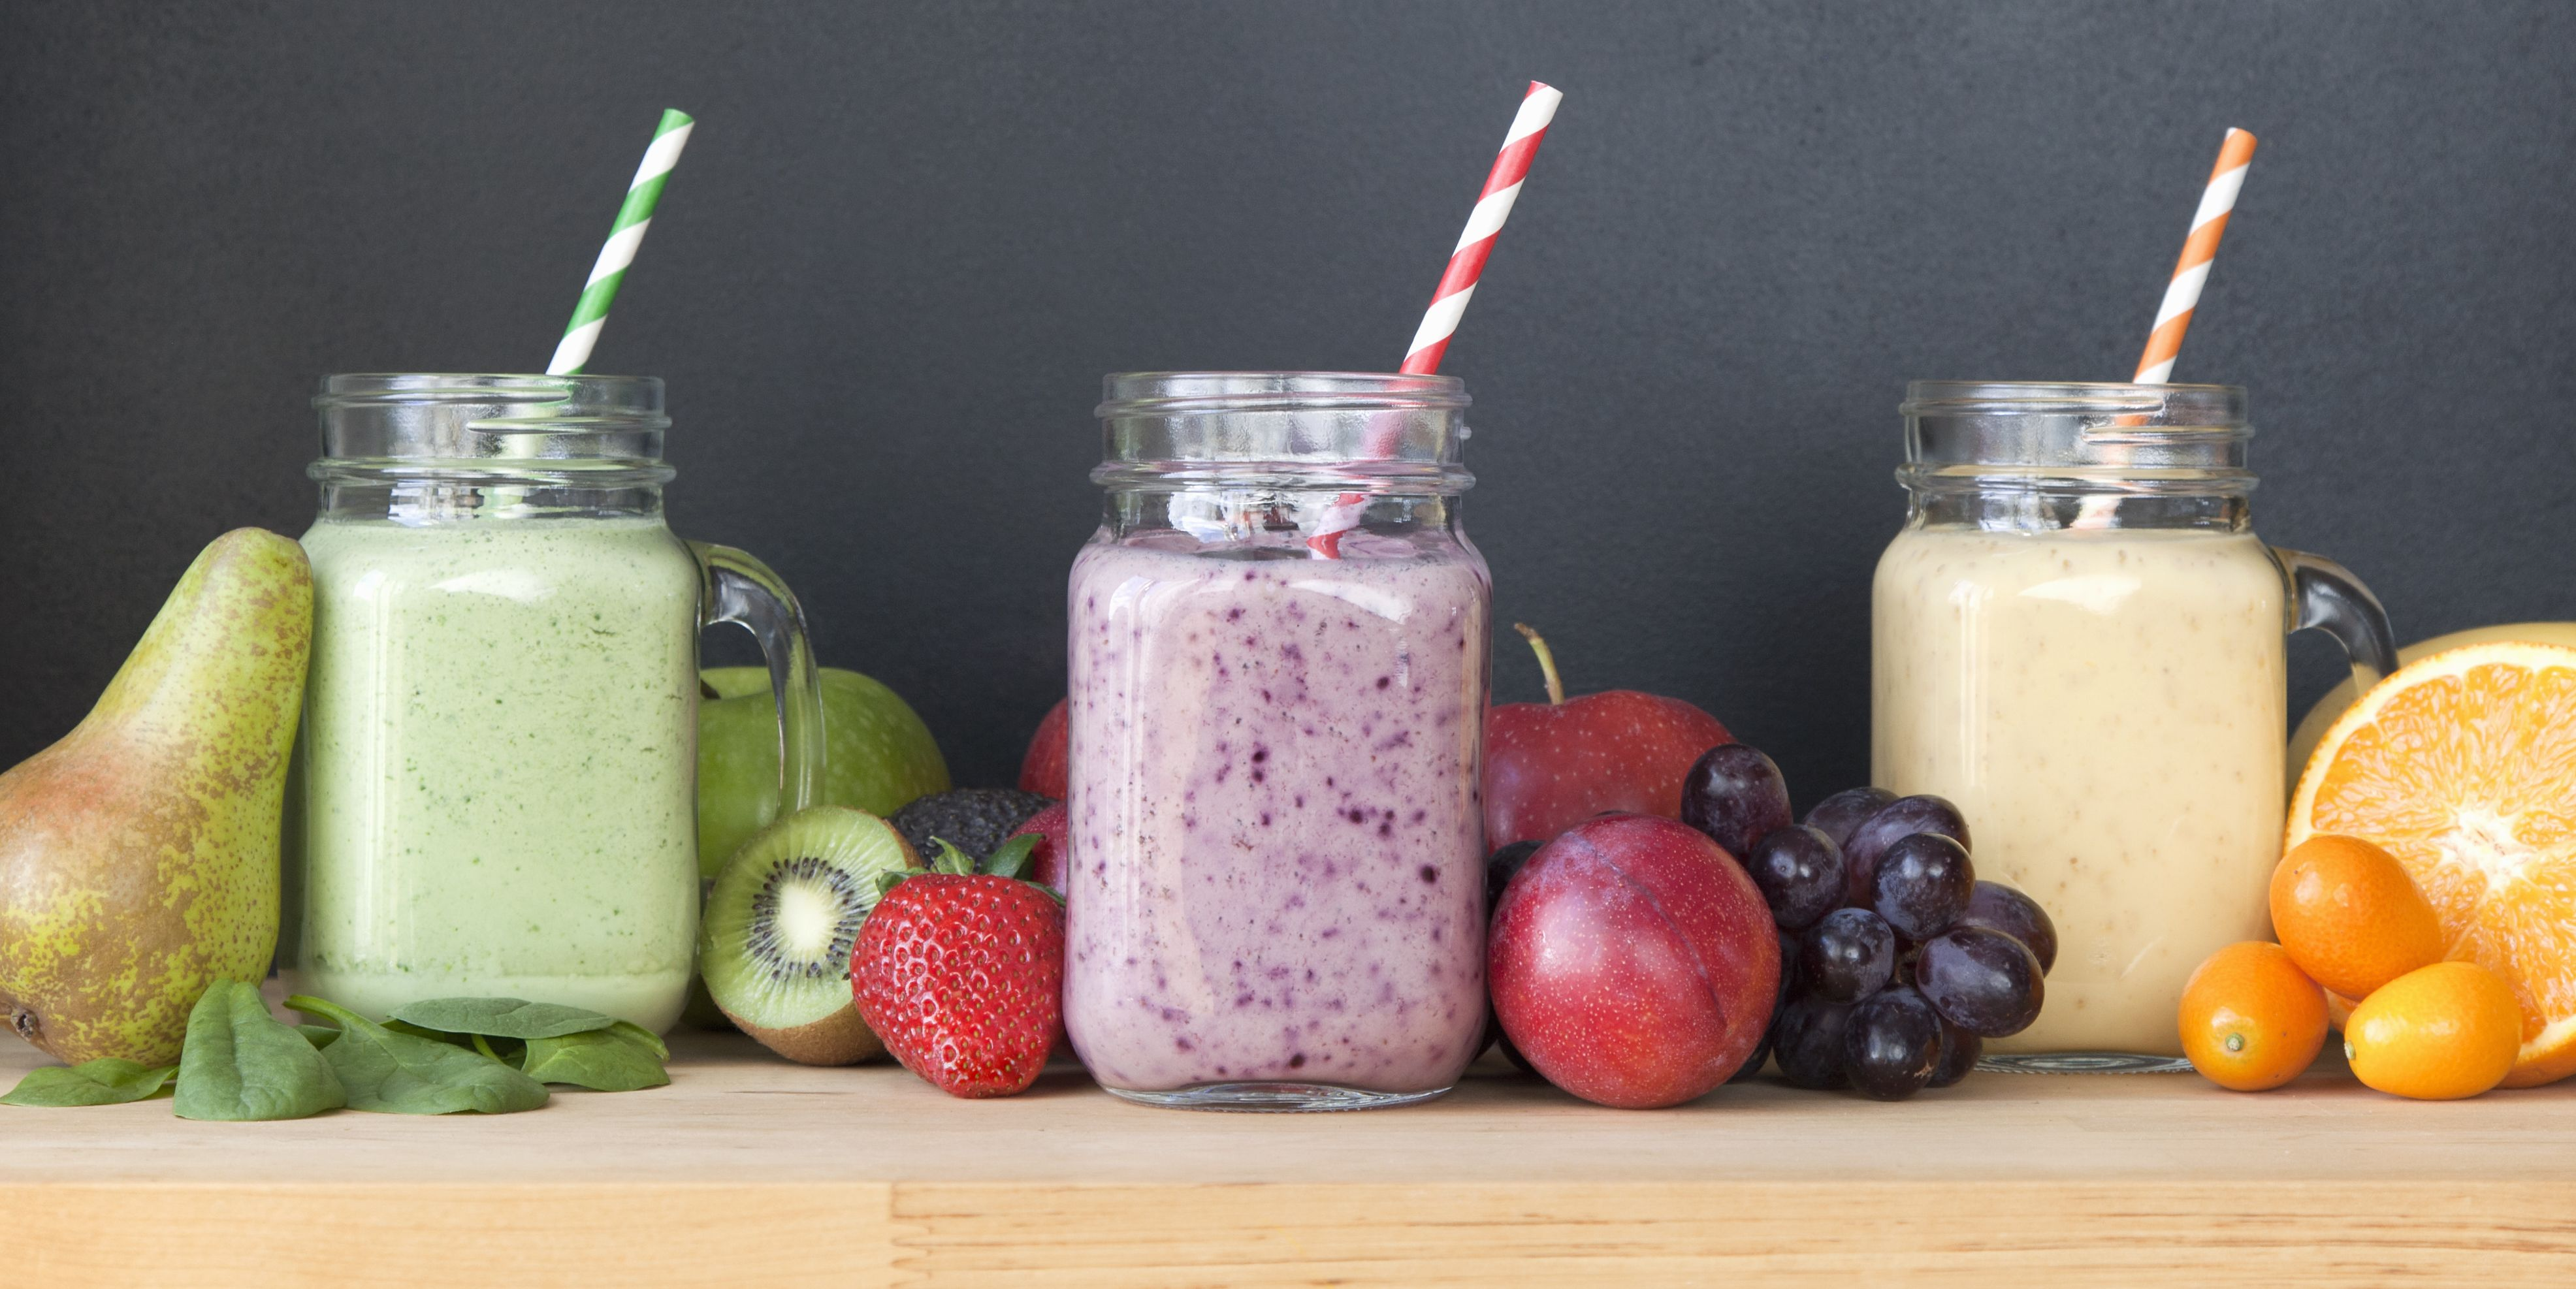 30 Healthy Smoothie Recipes That Are Delicious and so Simple to Make